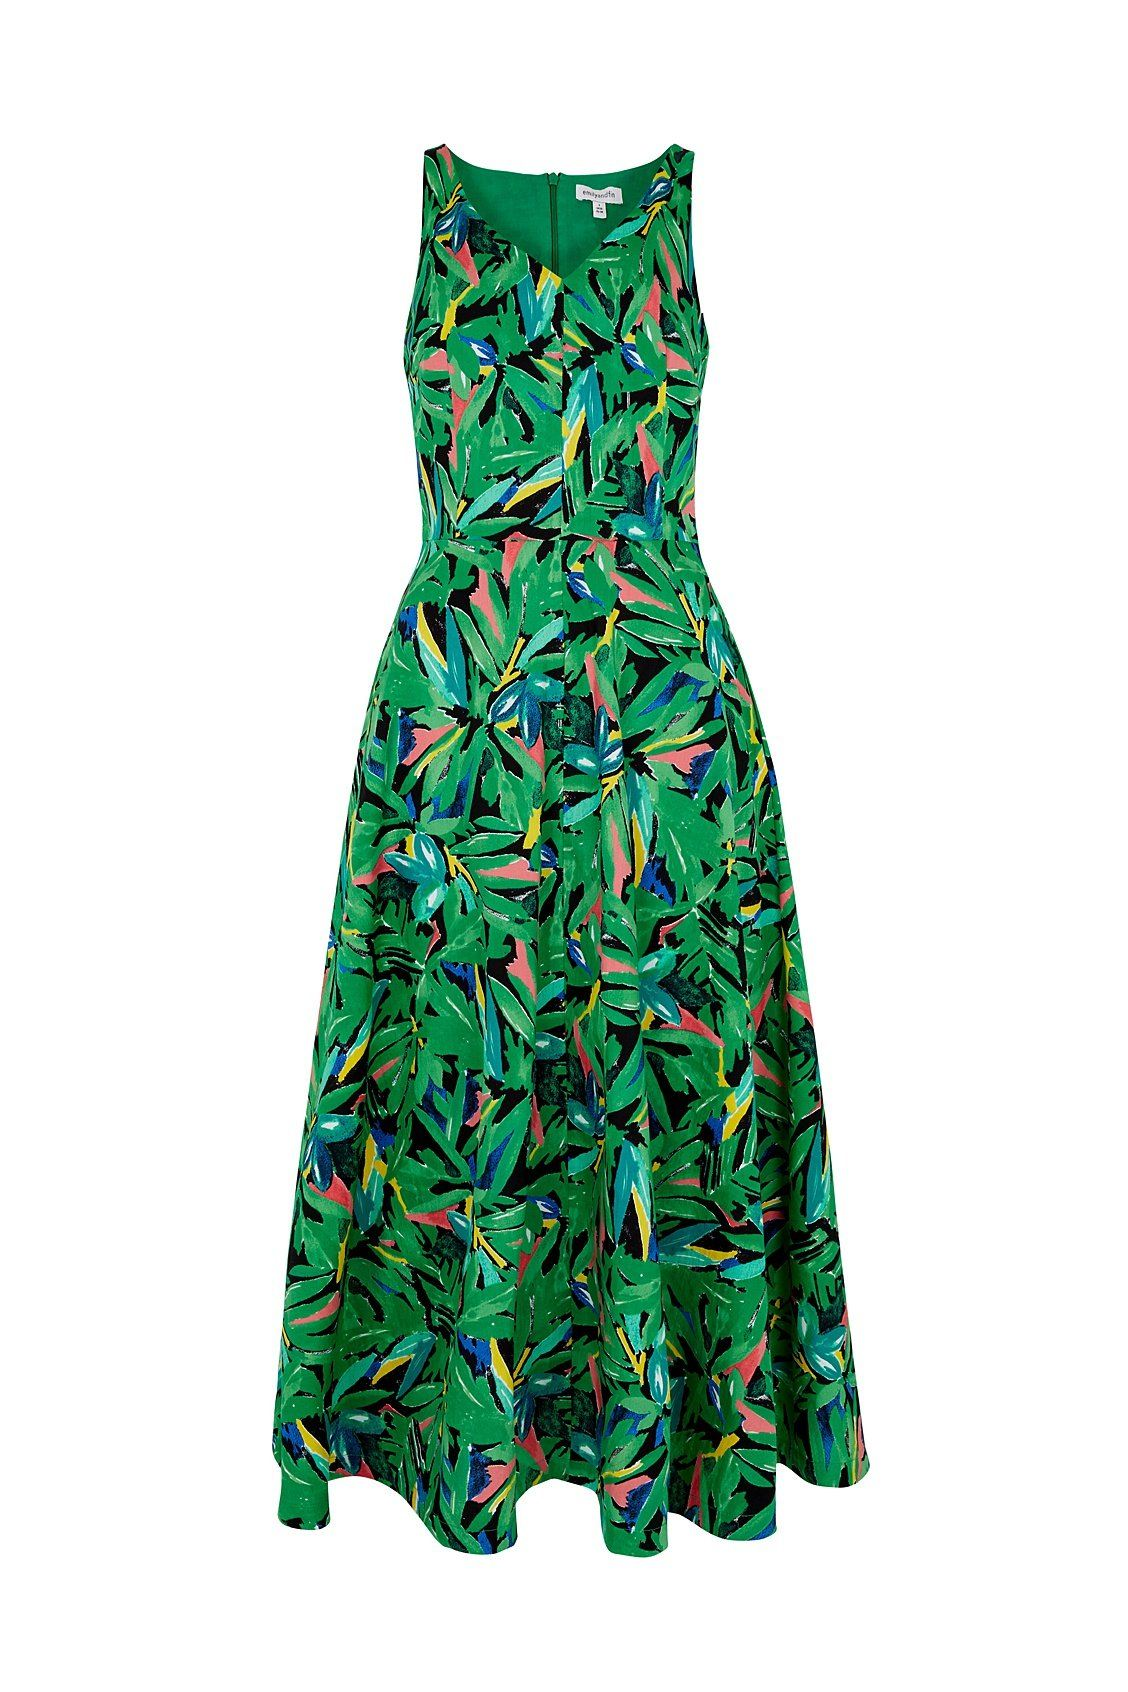 Margot Hothouse Palms Midi Dress Dress BouChic | Homeware, Fashion, Gifts, Accessories